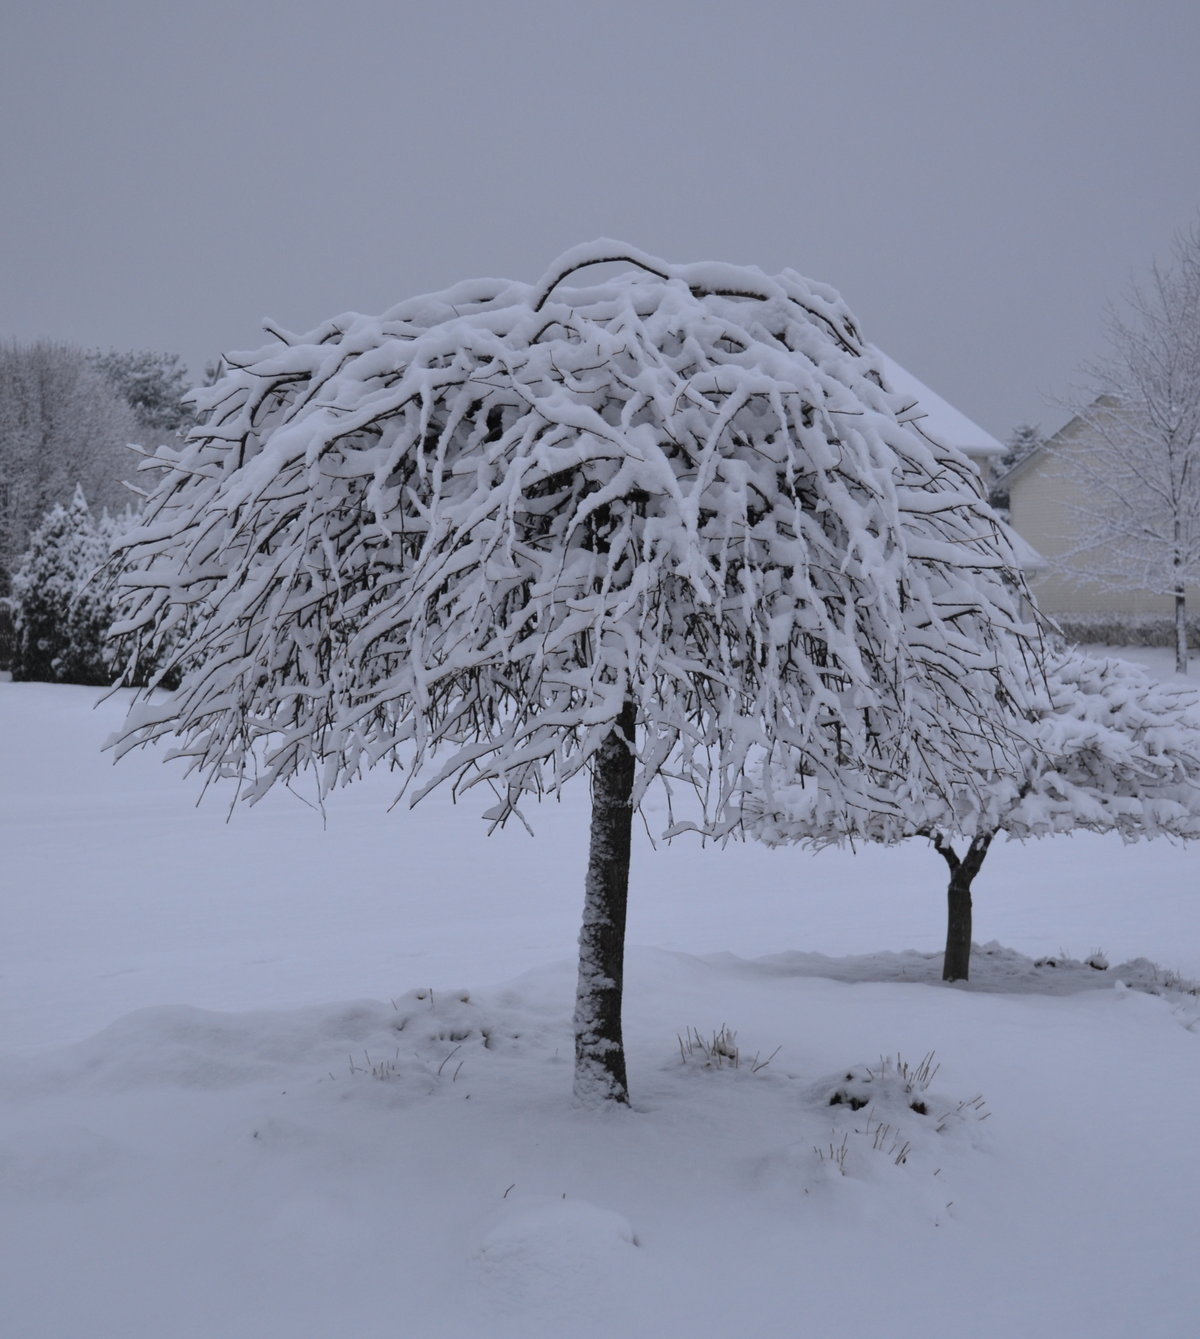 Snow covered Lavender Twist Weeping Redbud tree.